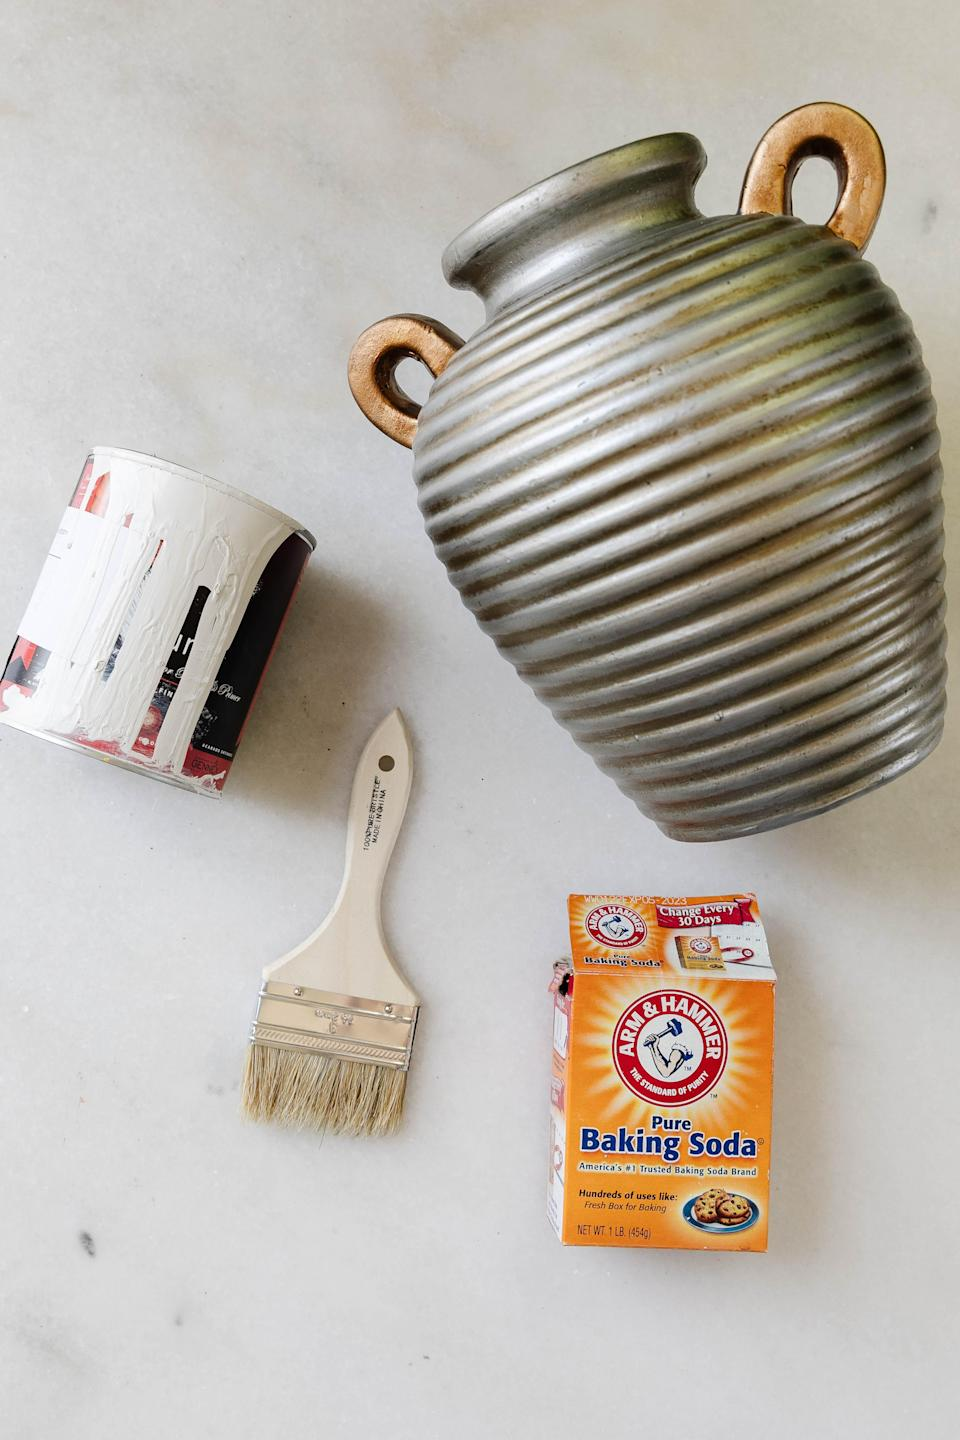 Gather your materials: baking soda and household paint.